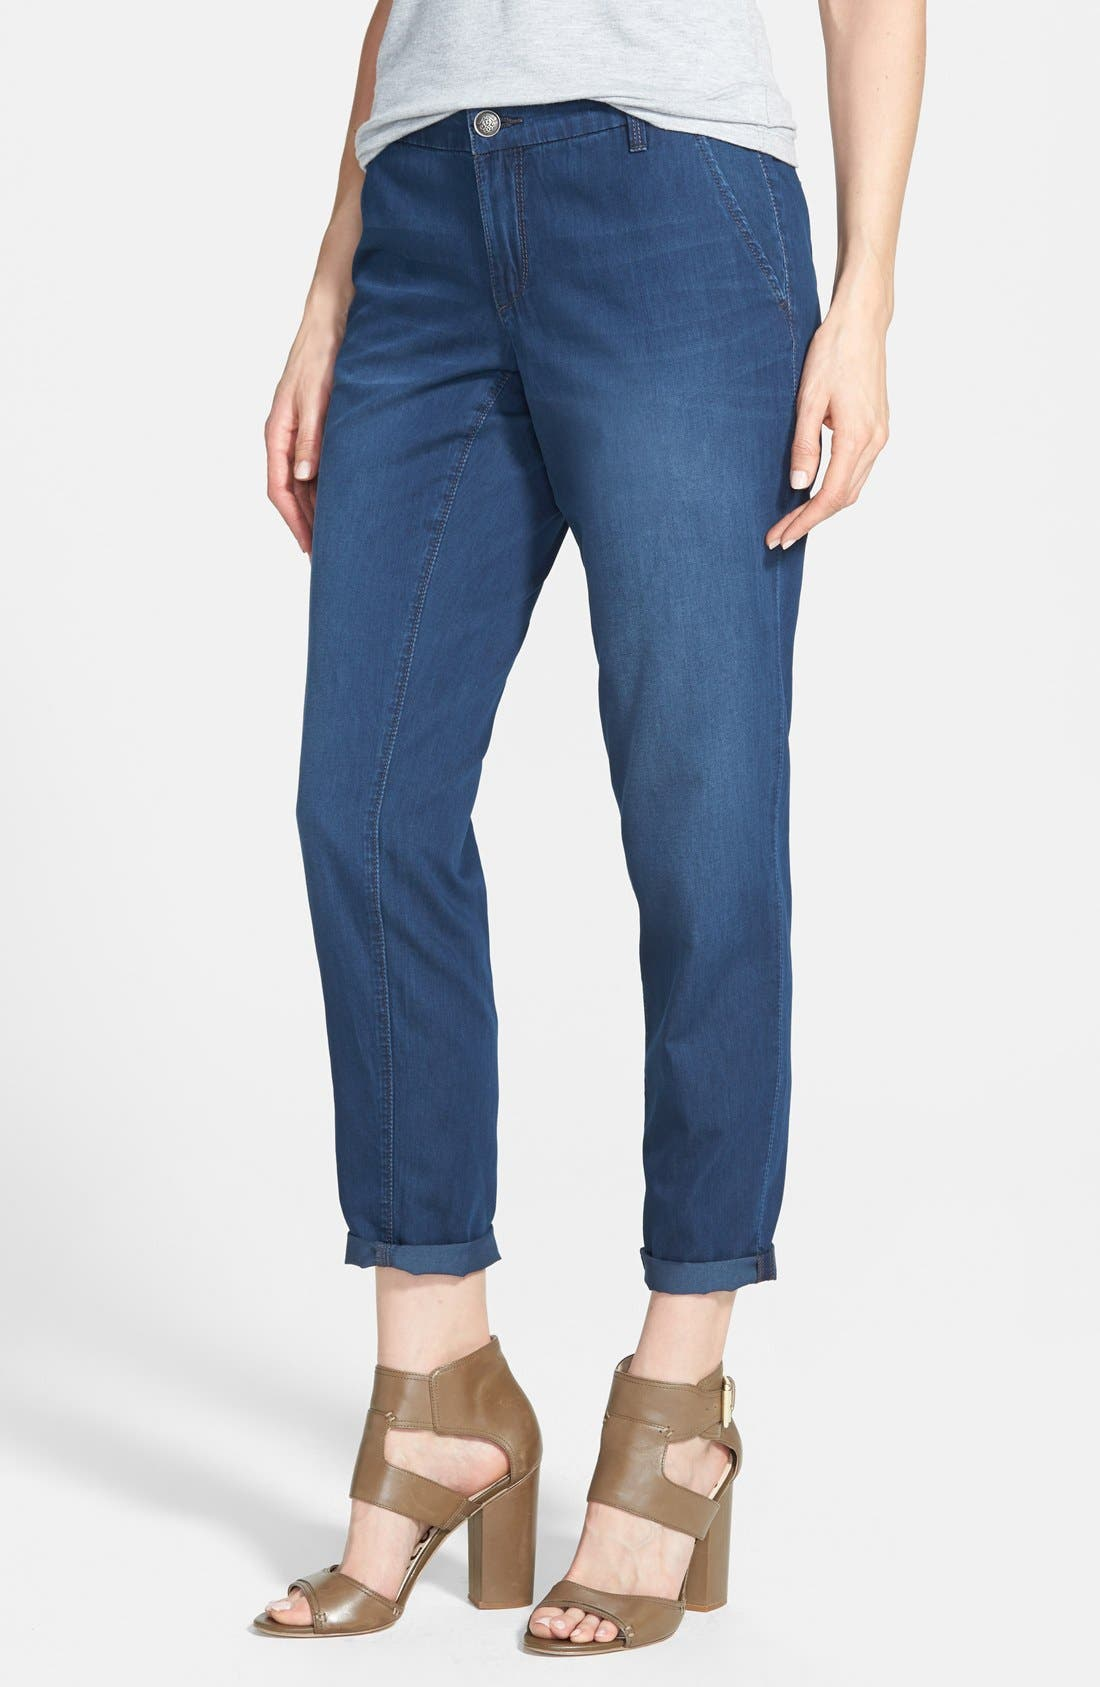 Alternate Image 1 Selected - Jessica Simpson 'Newsboy' Roll Cuff Denim Pants